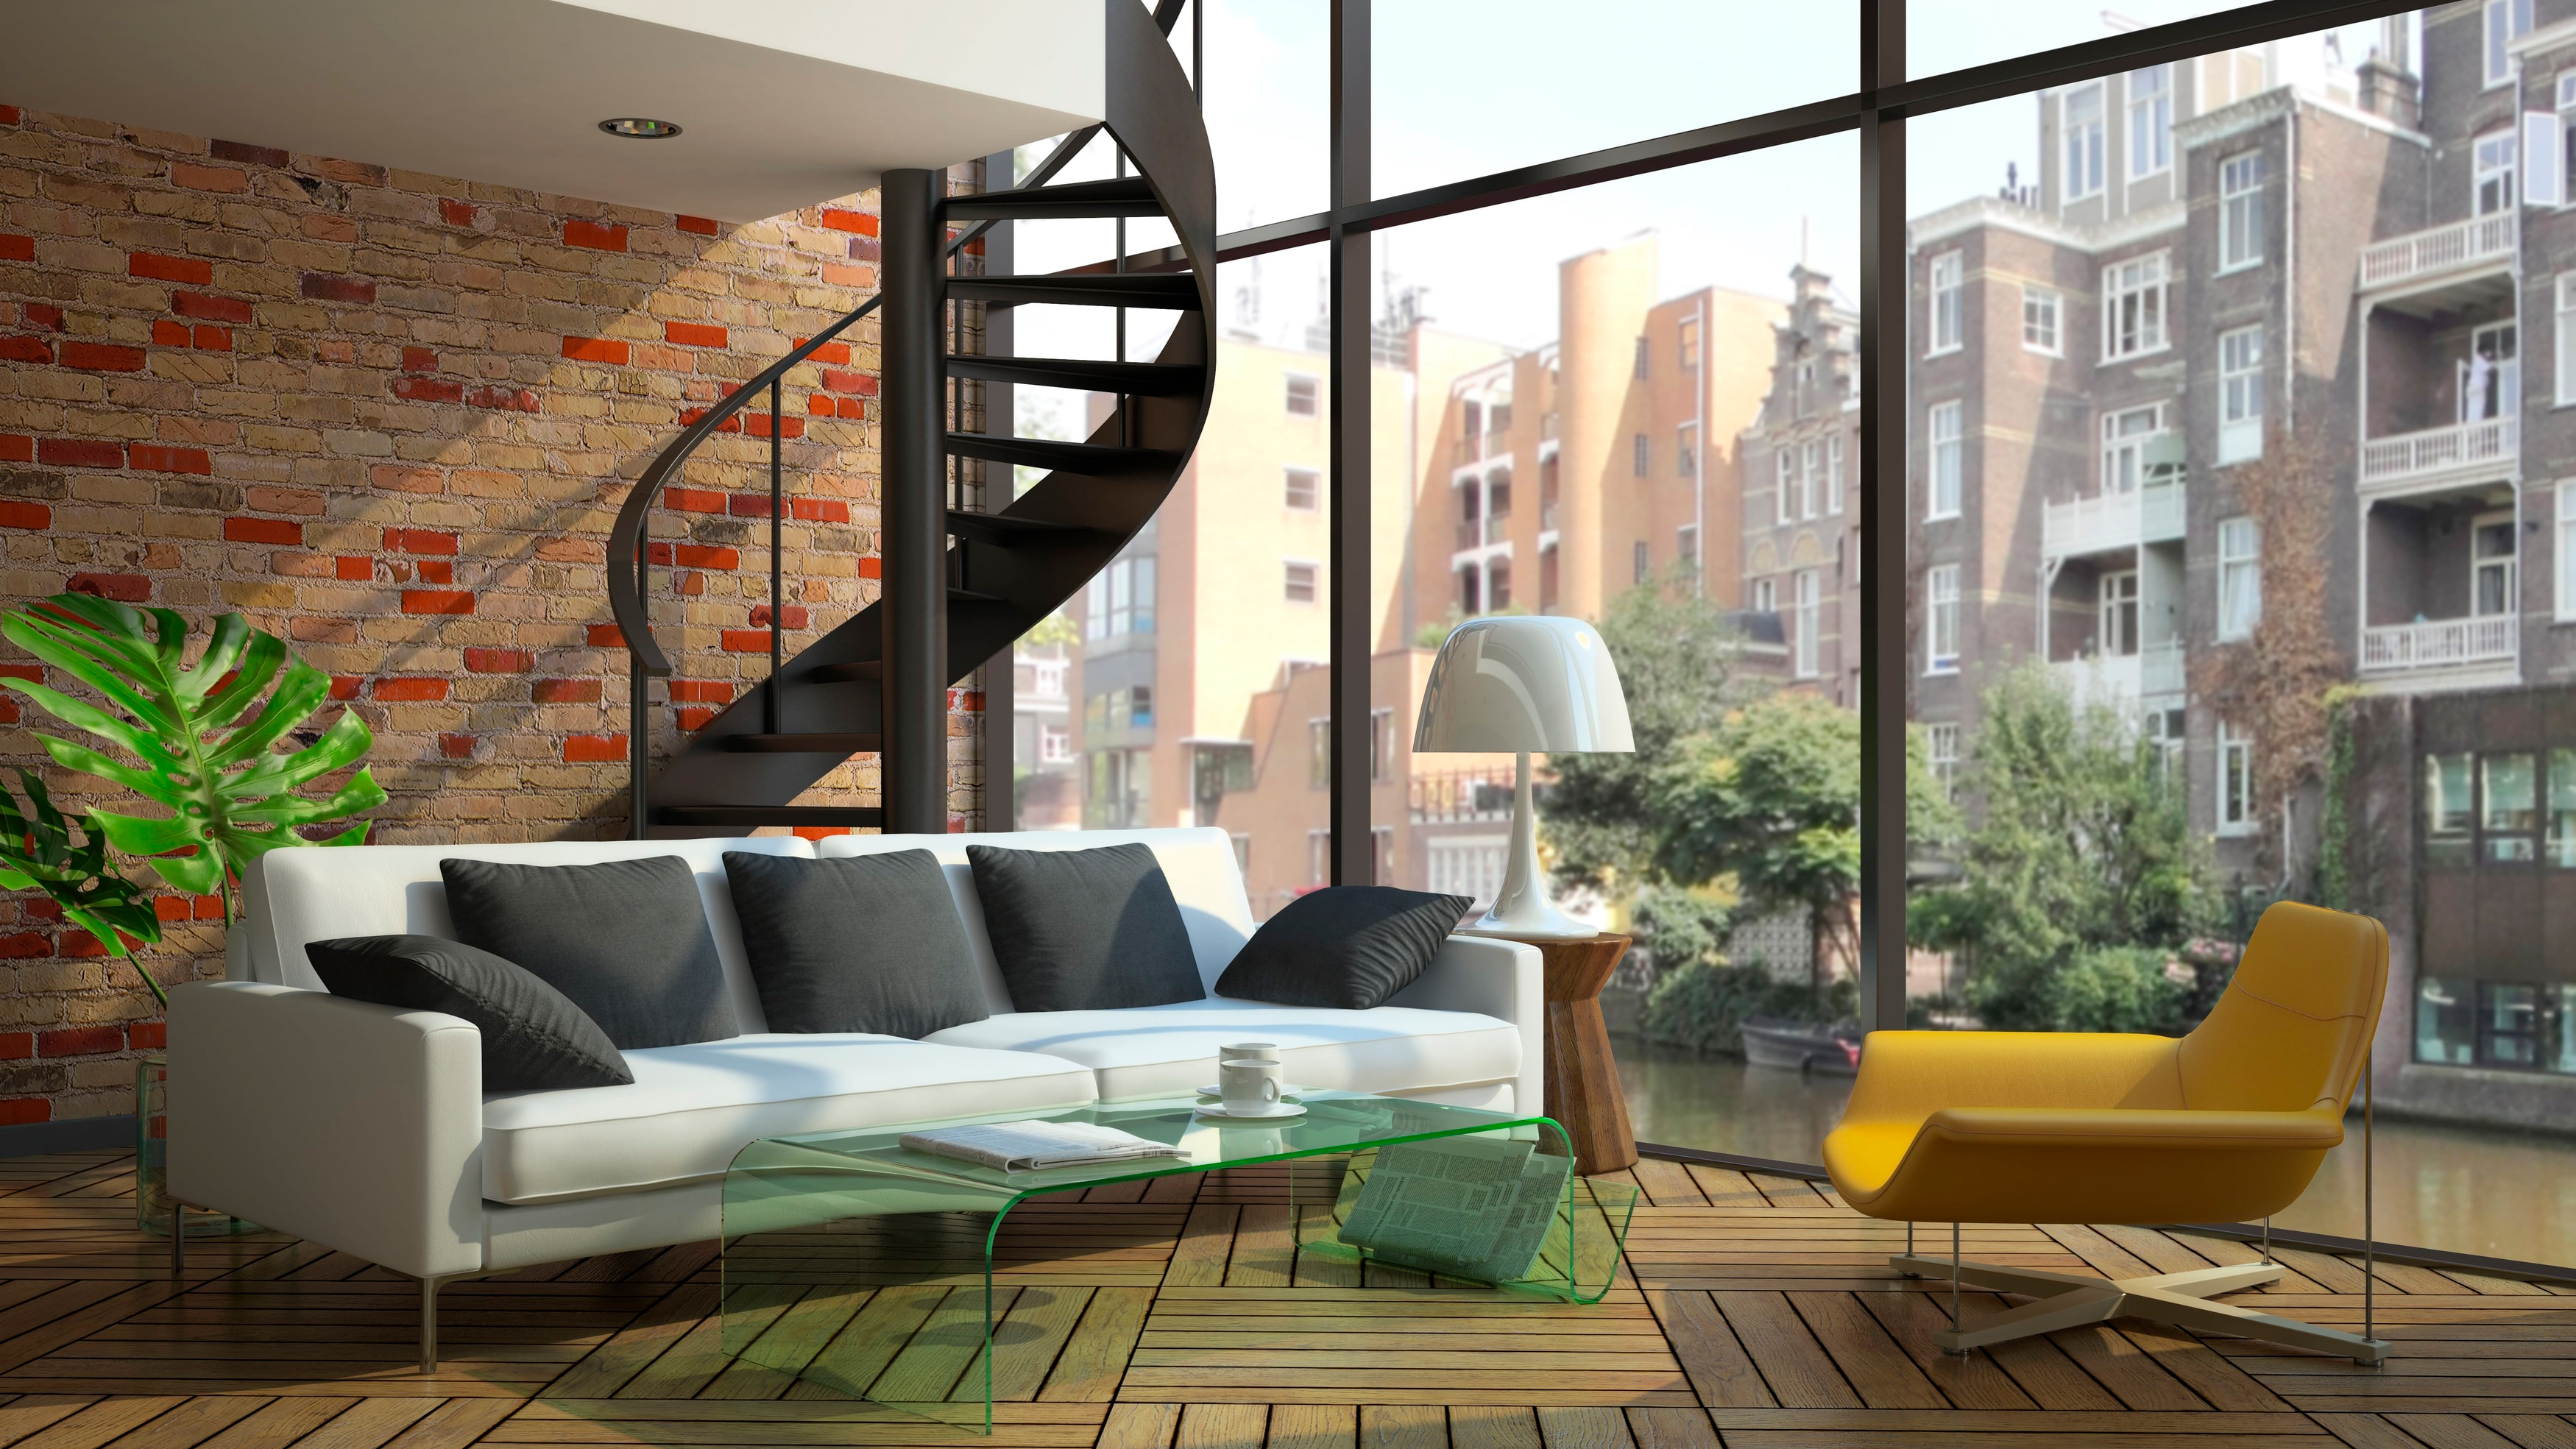 Eclectic Yet Minimal Loft Es Are Known For The Ample Airy White E Available Thus Style Furniture Must Be Picked Out Such That It Does Not